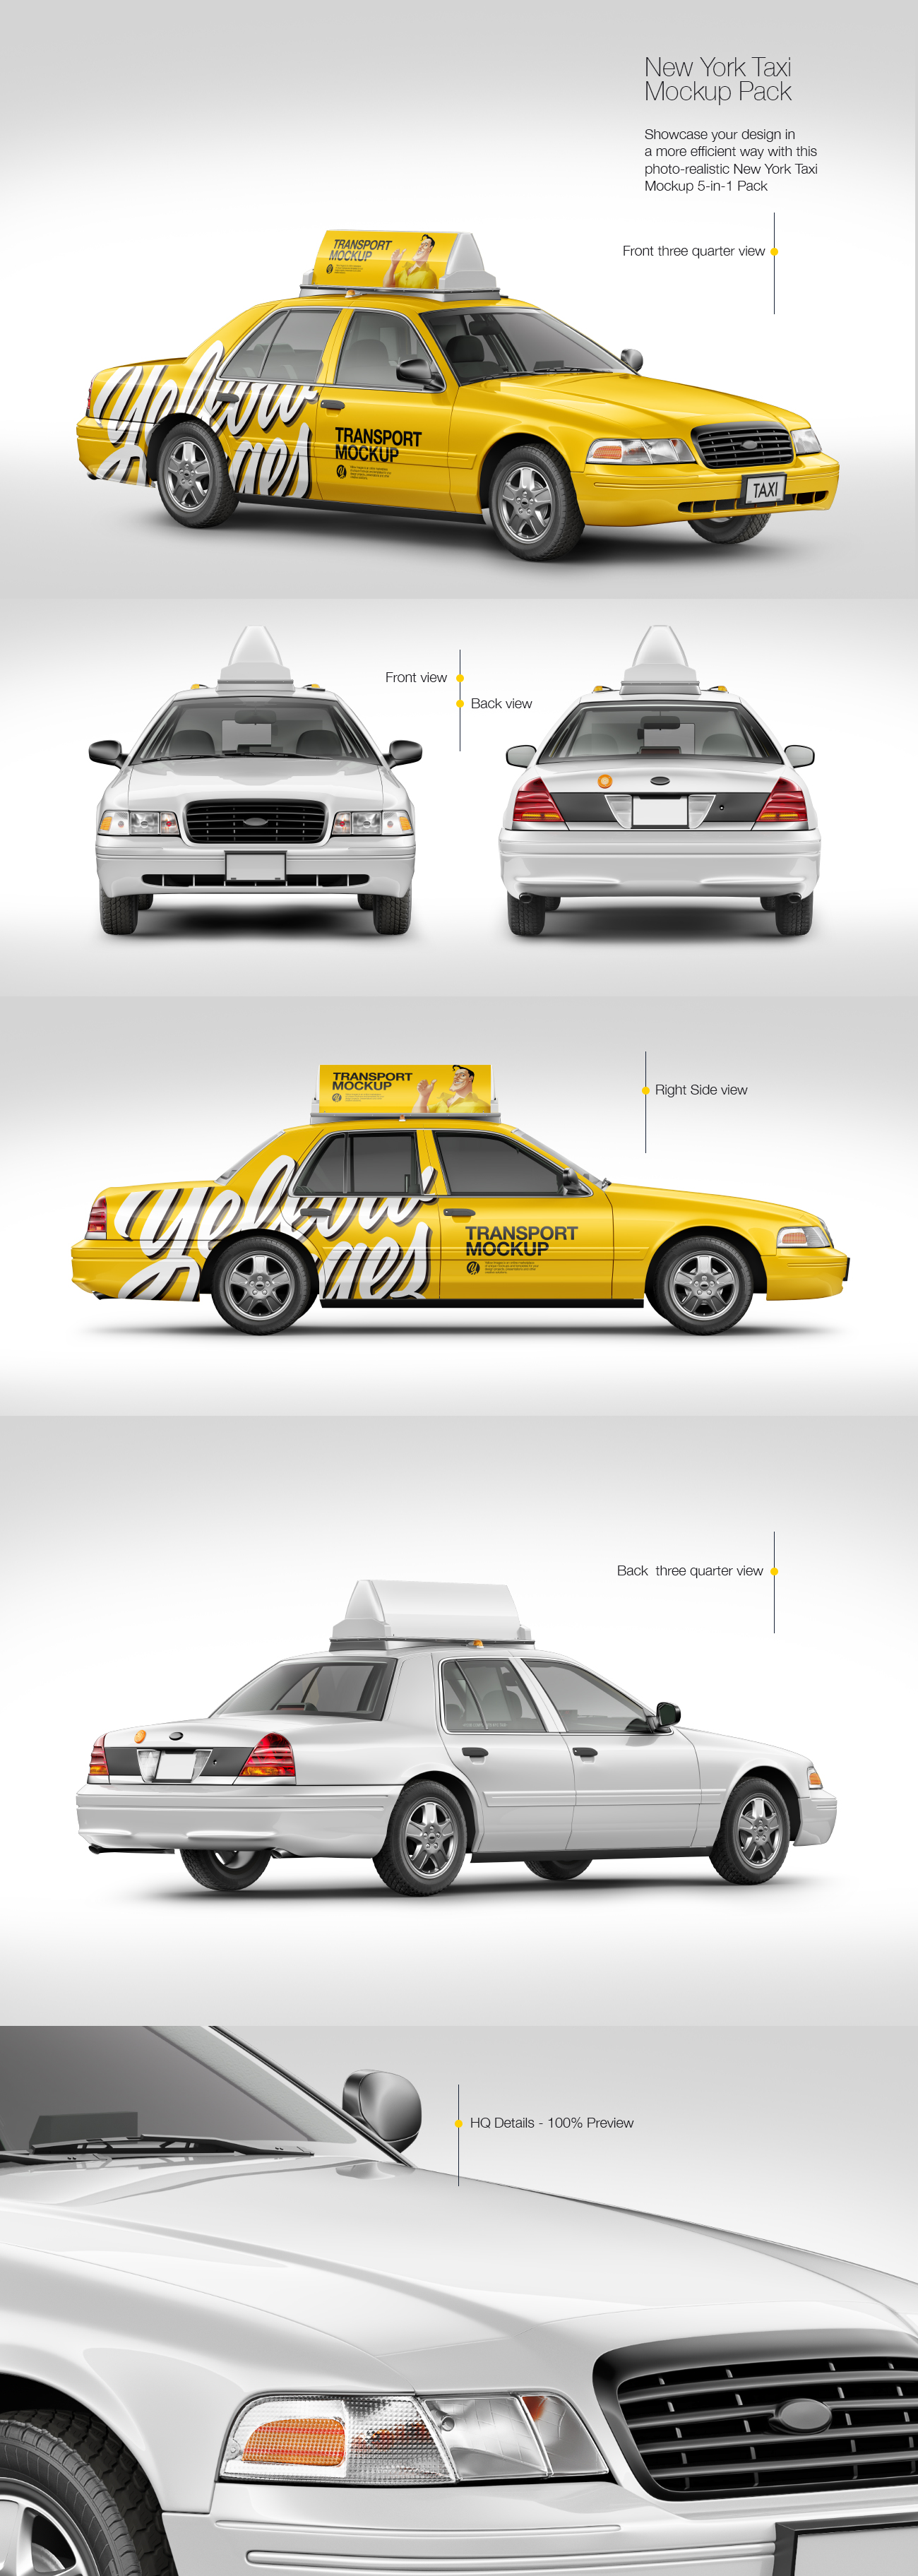 New York Taxi Mockup Pack